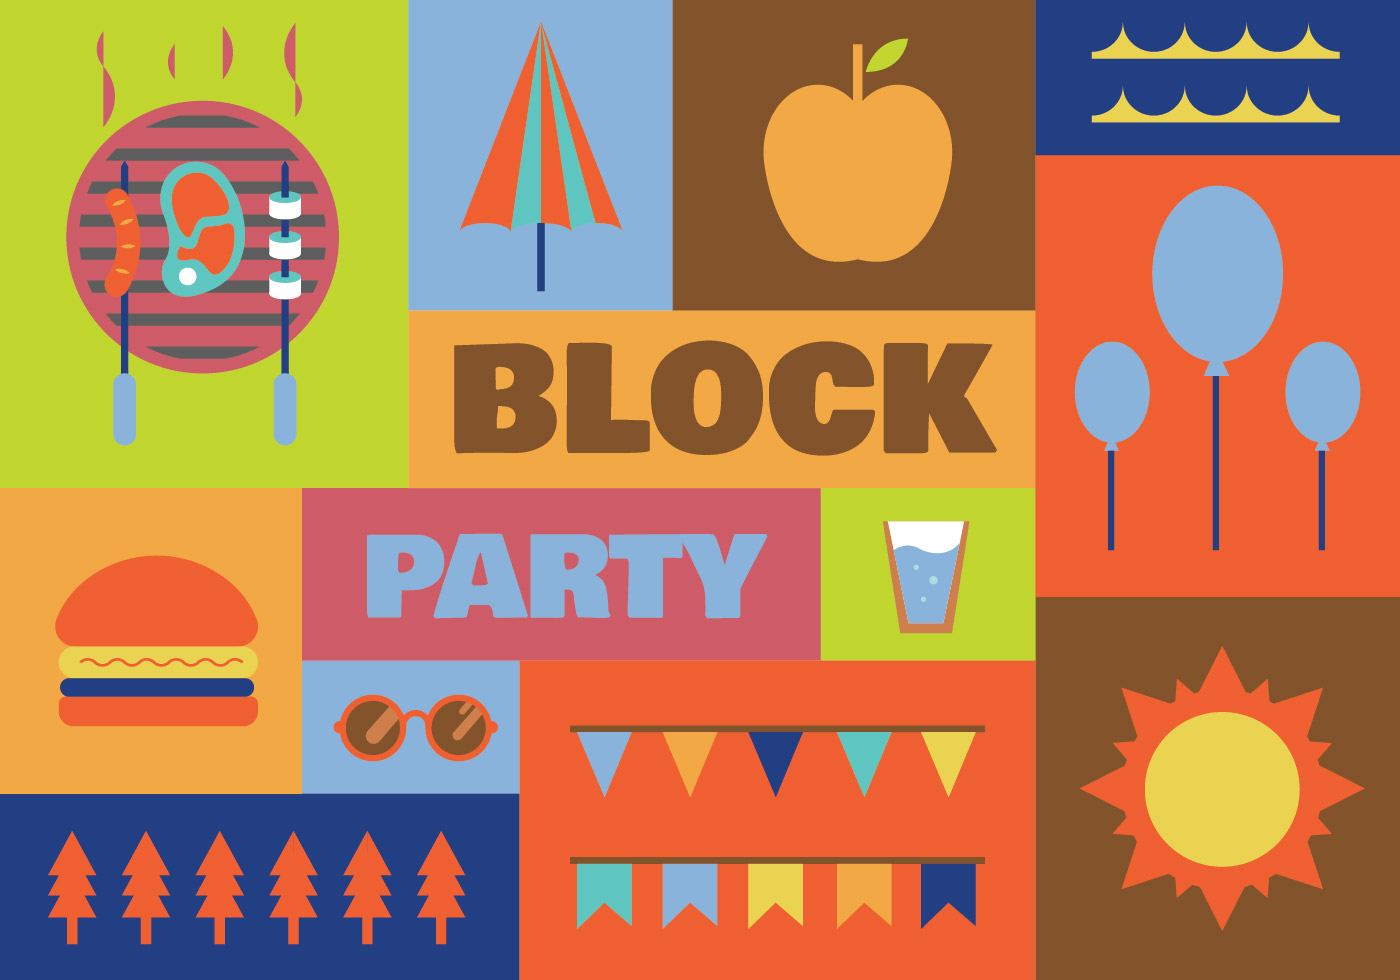 Block party vector icons - Download Free Vectors, Clipart ...